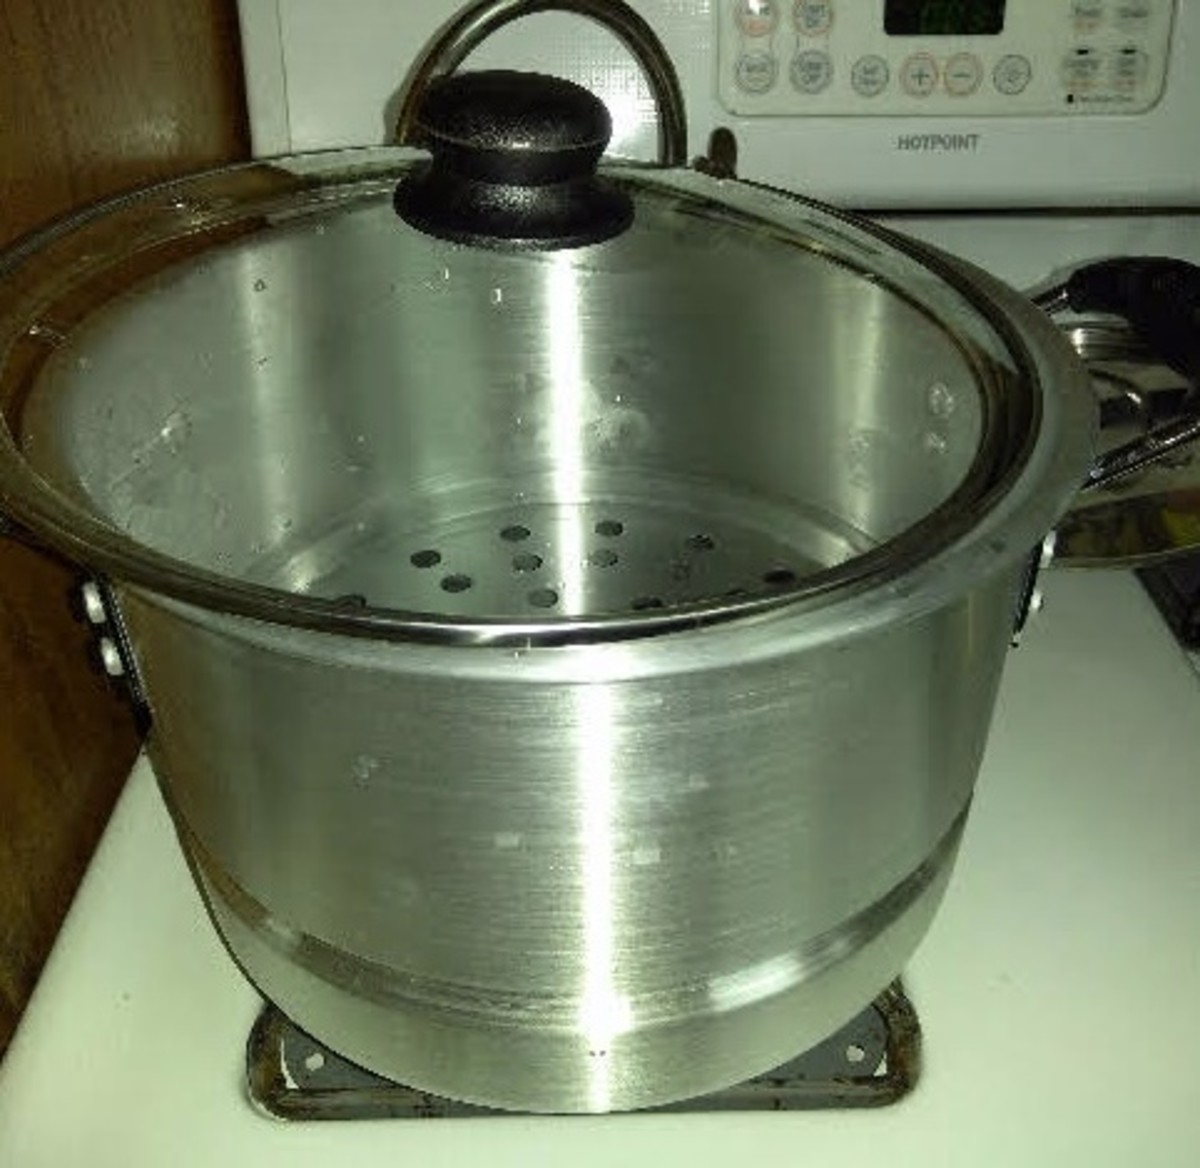 You will need a large steamer pot, like this, to cook your tamales.